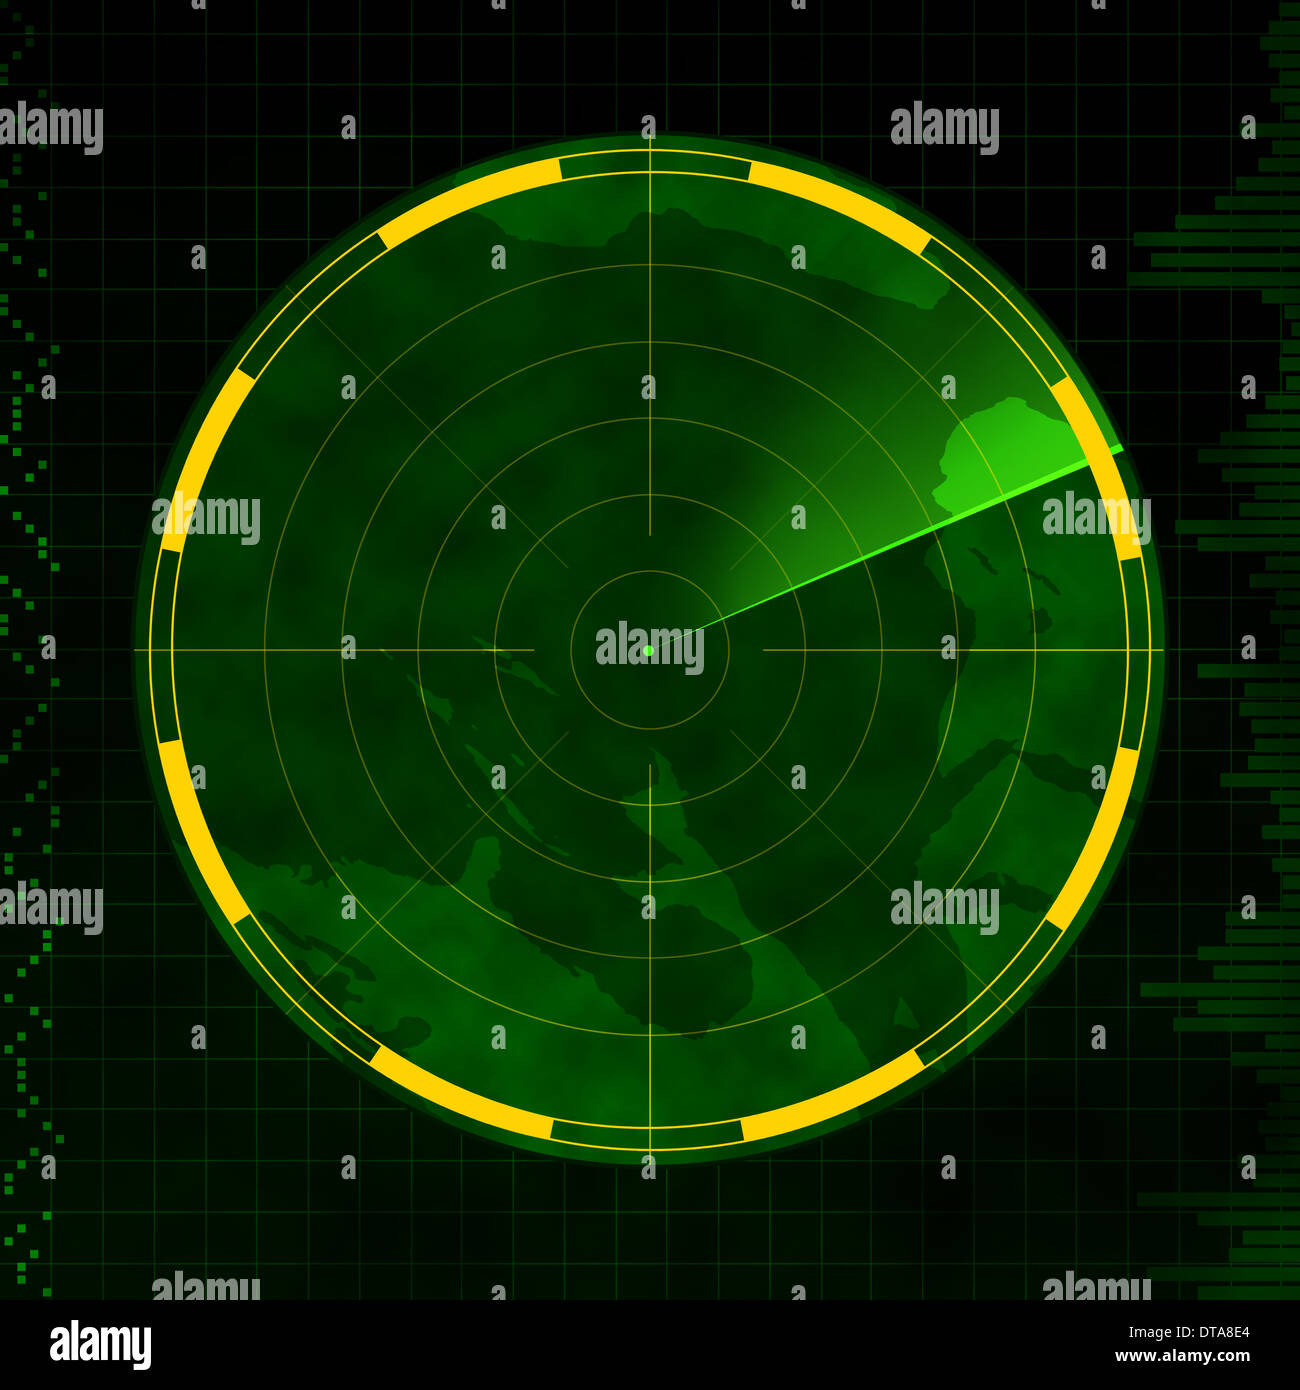 Radar with an empty screen and green sweeping arm. - Stock Image